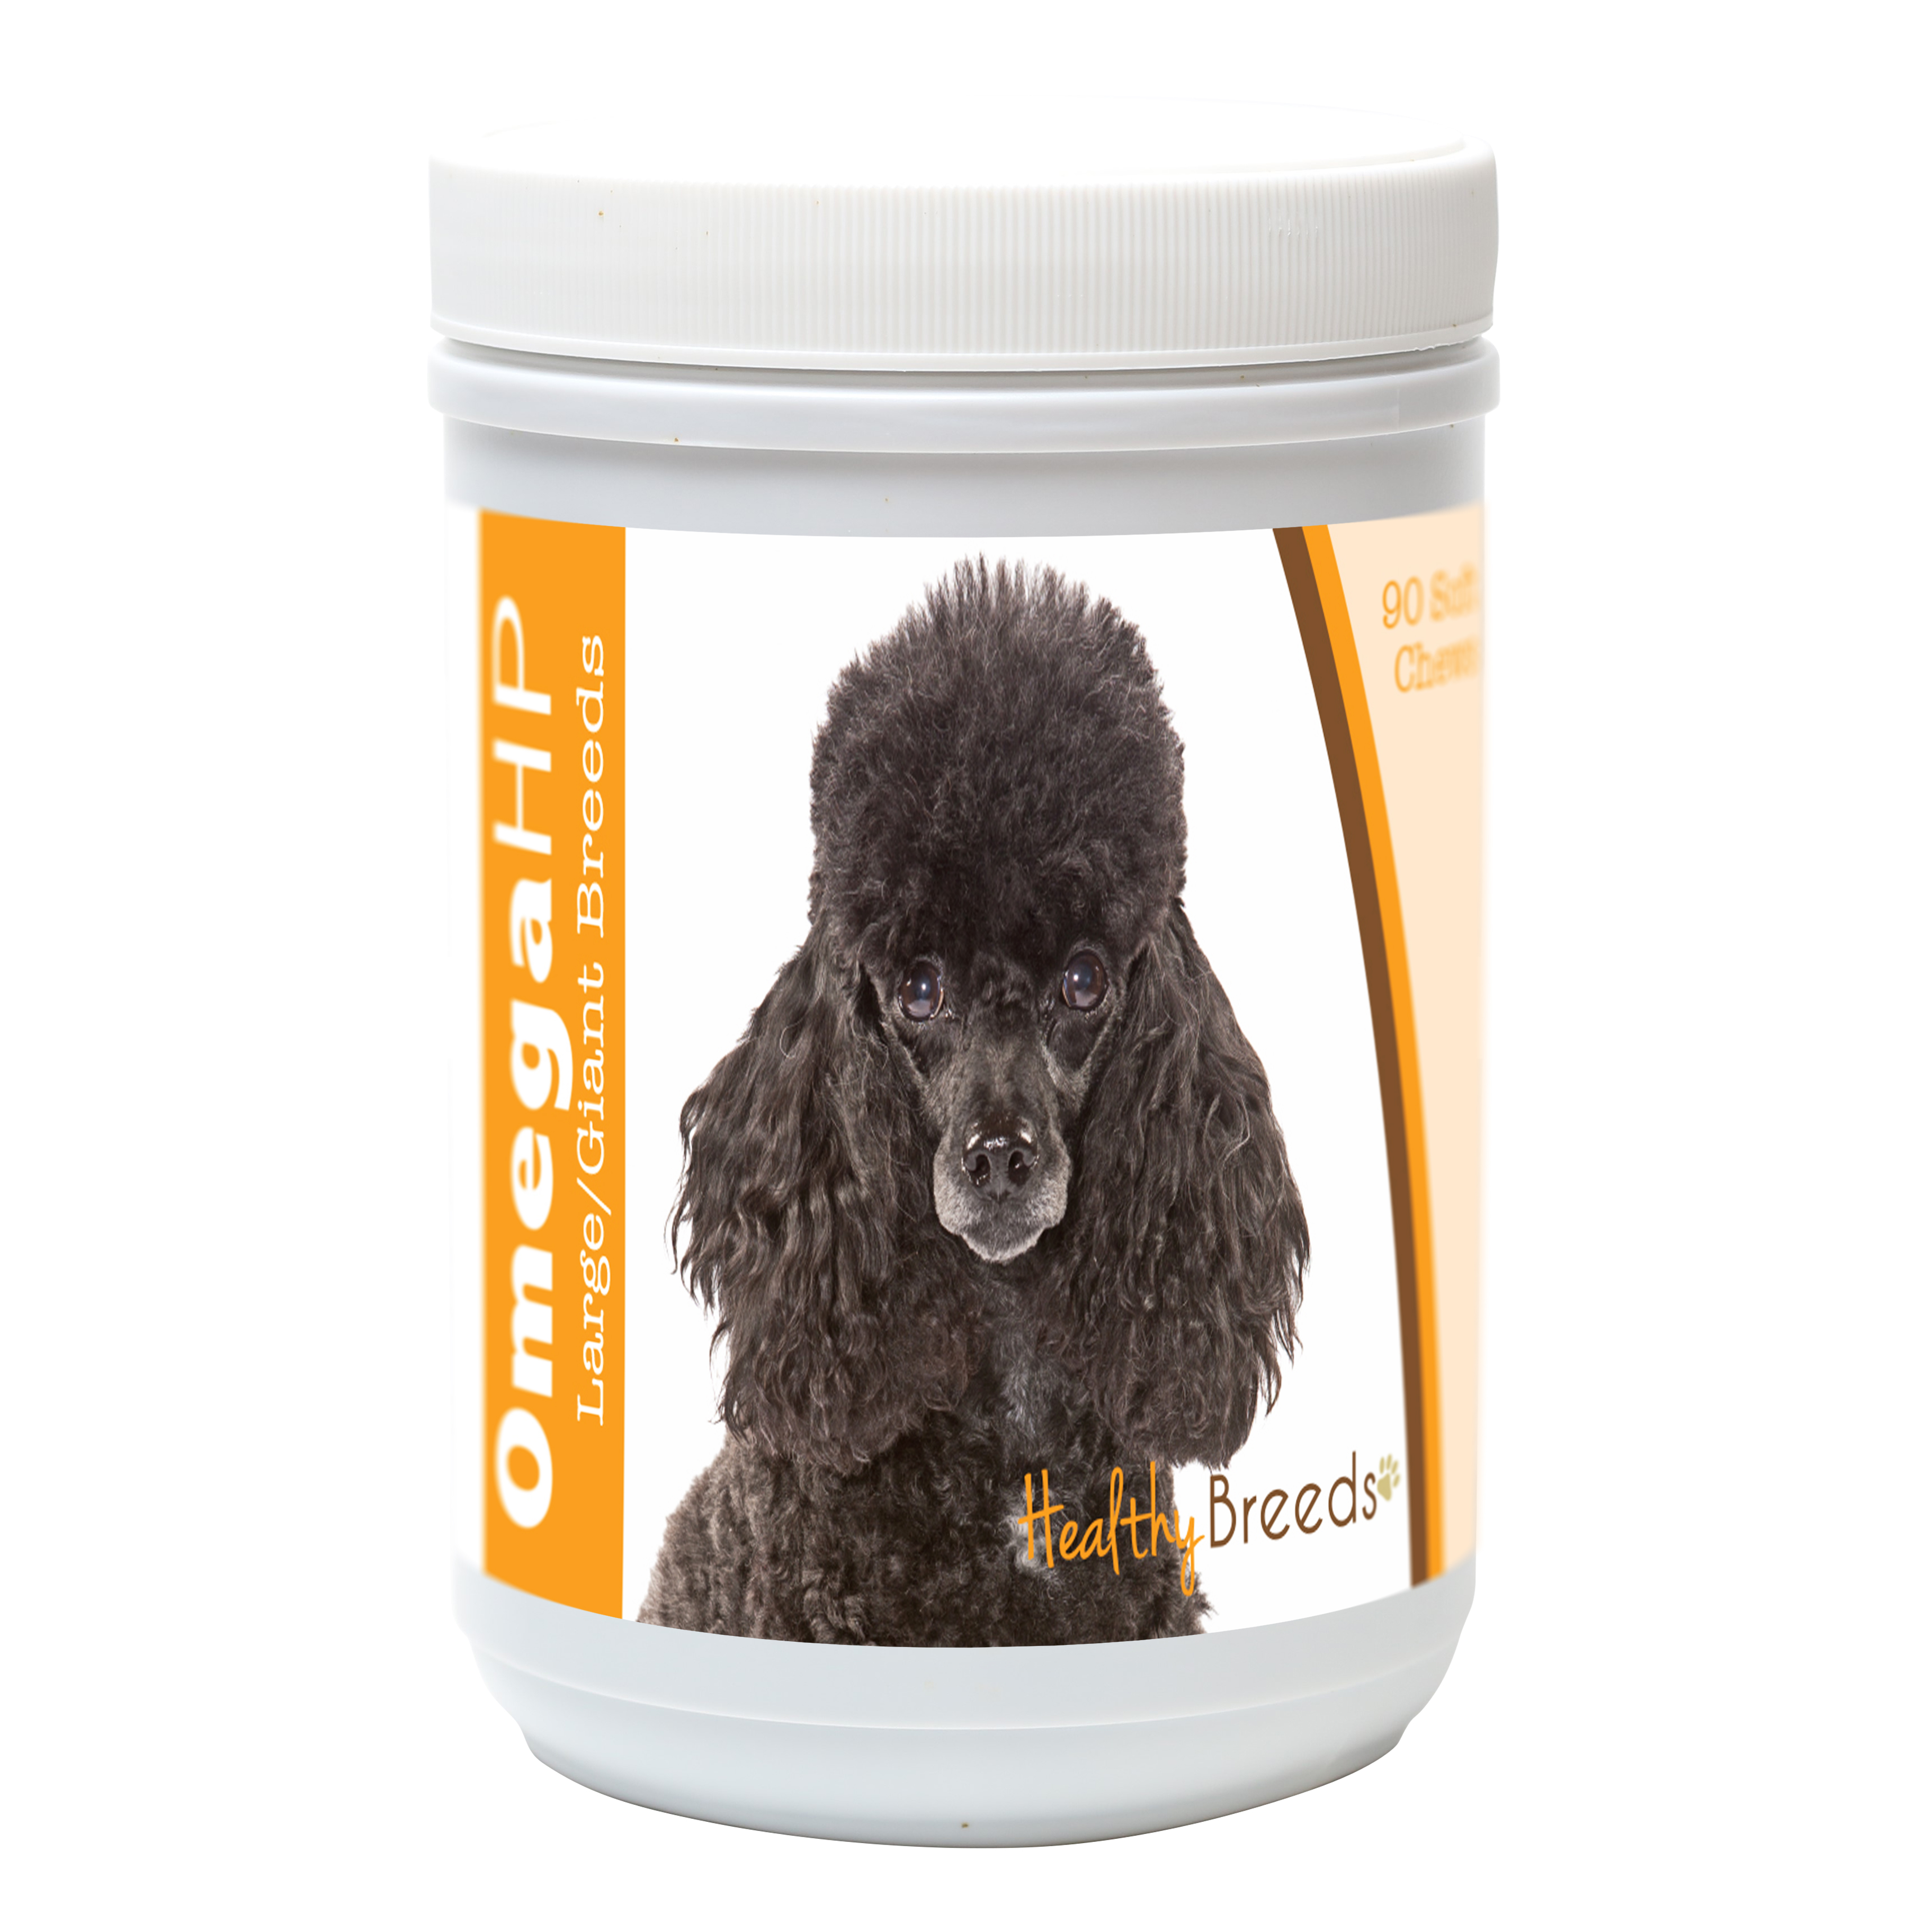 Healthy Breeds Poodle Omega HP Fatty Acid Skin and Coat Support Soft Chews